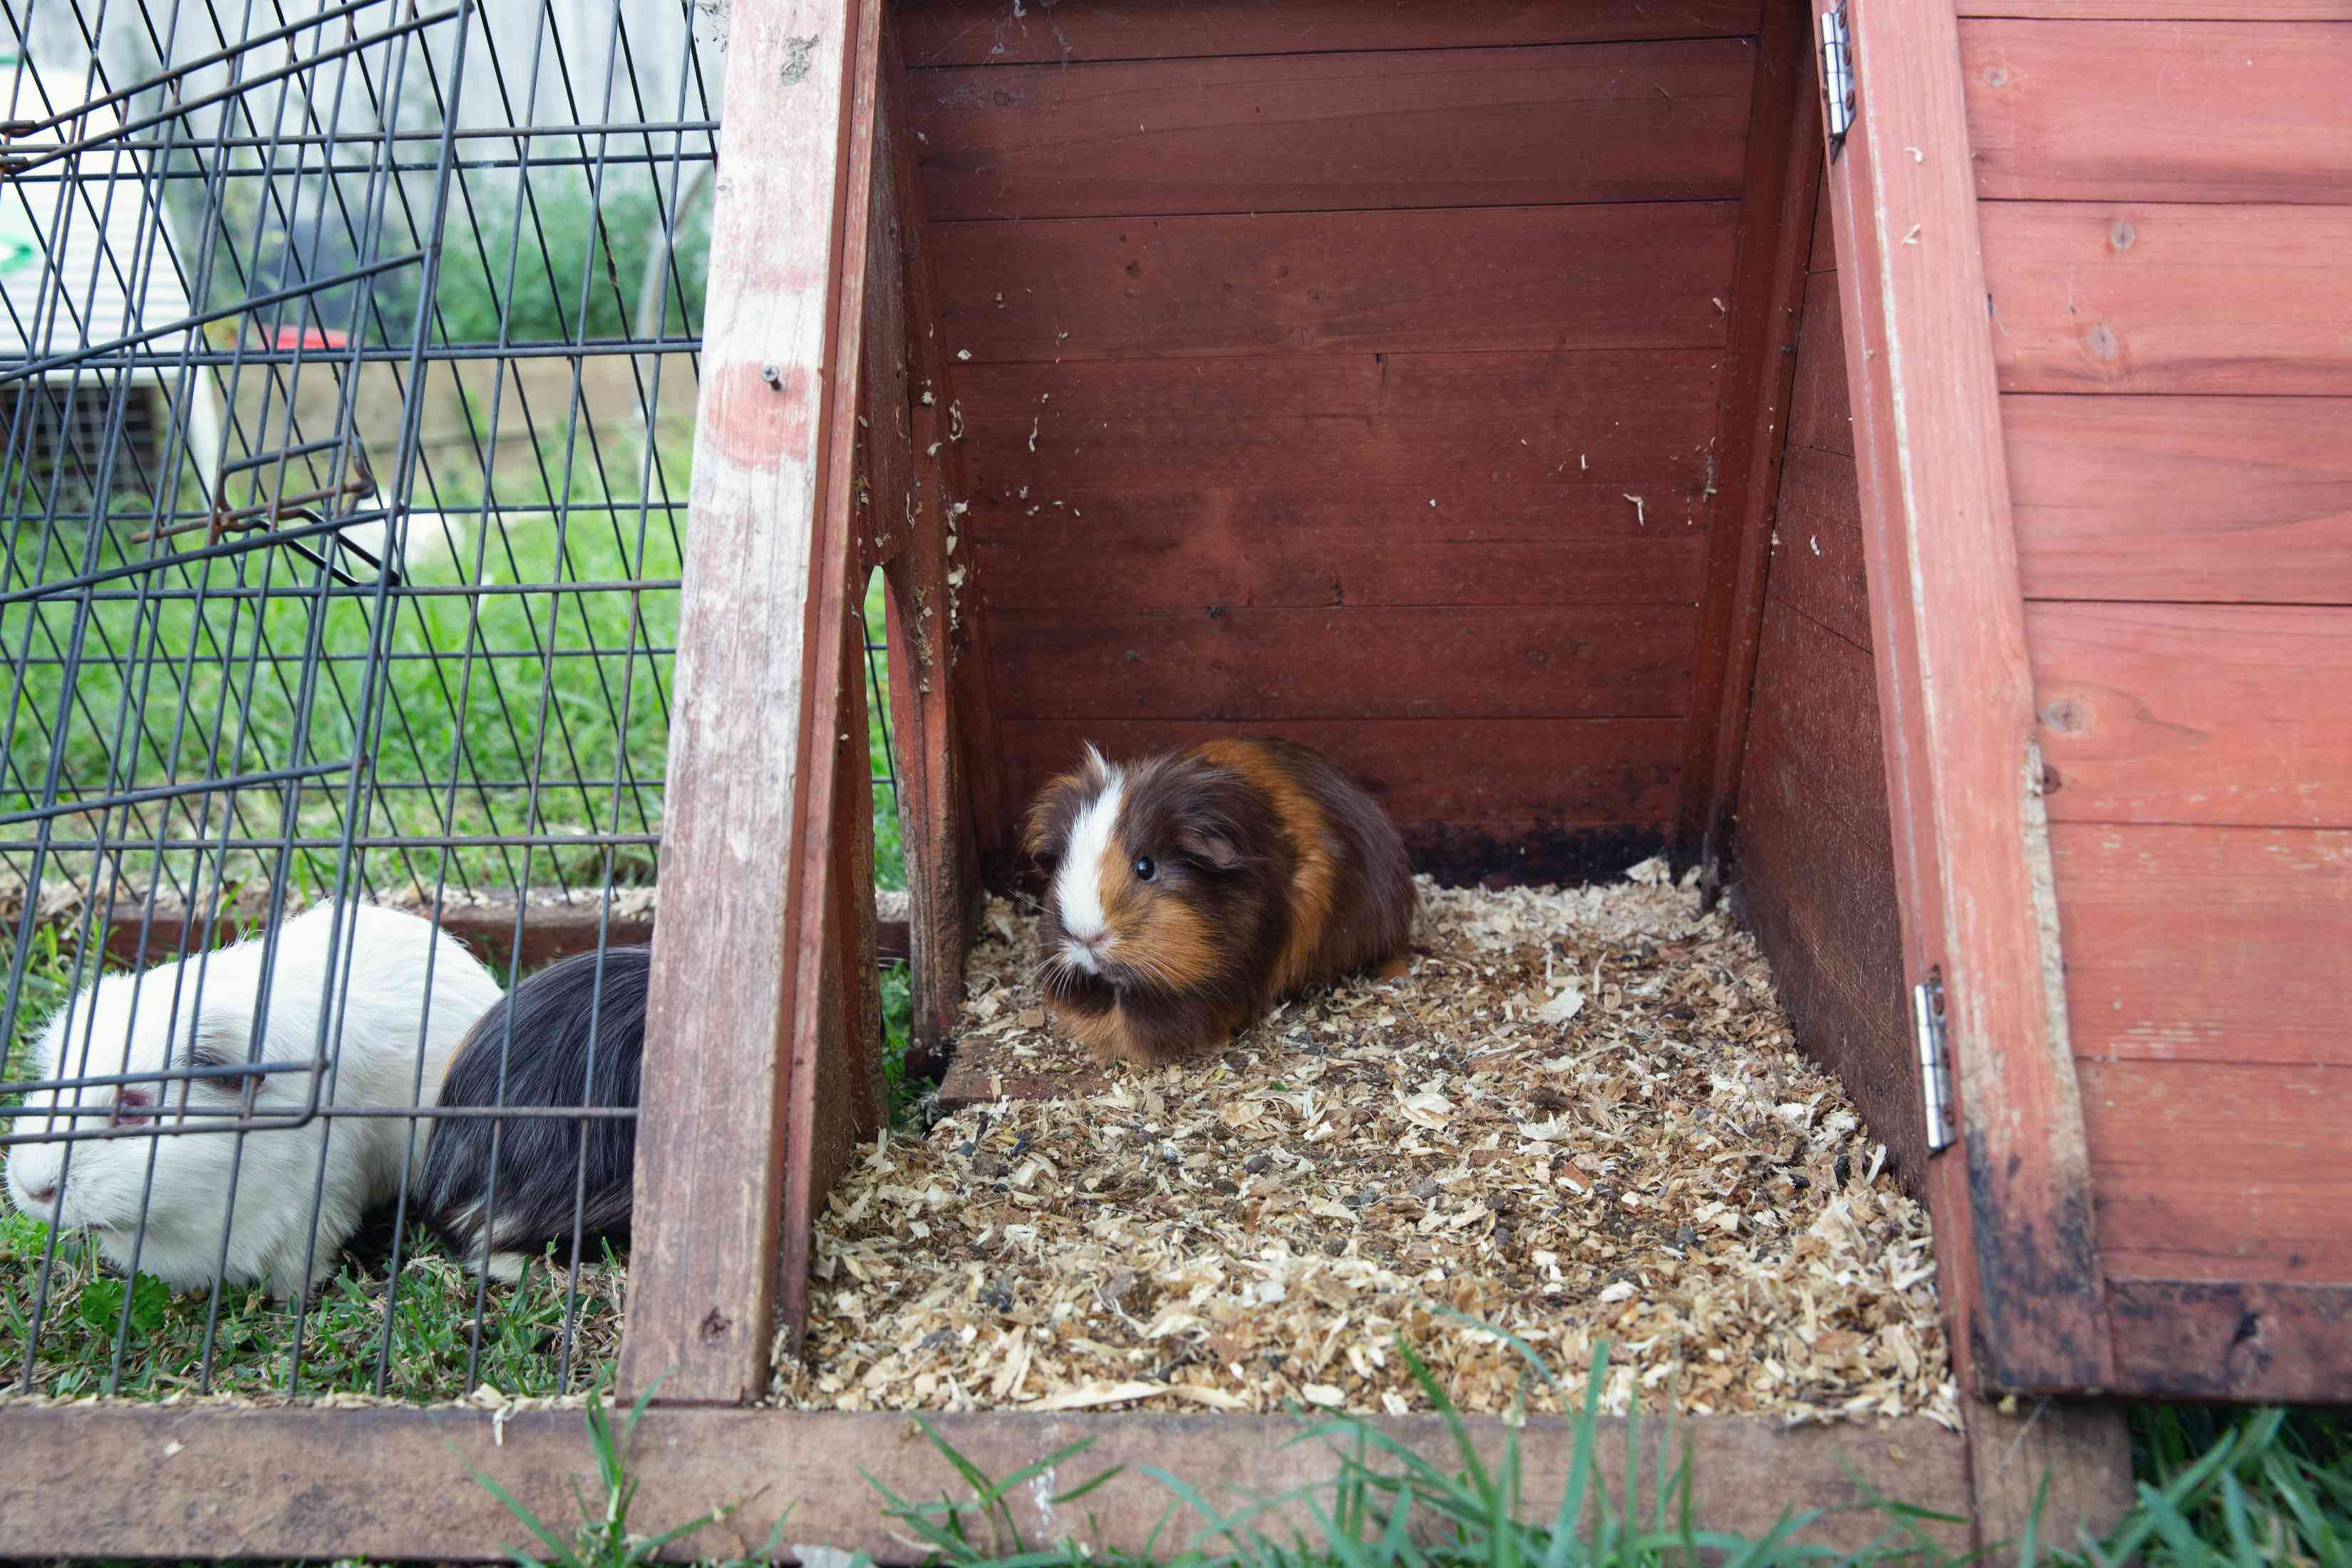 Guinea pigs sitting in a large cage with indoor and outdoor space